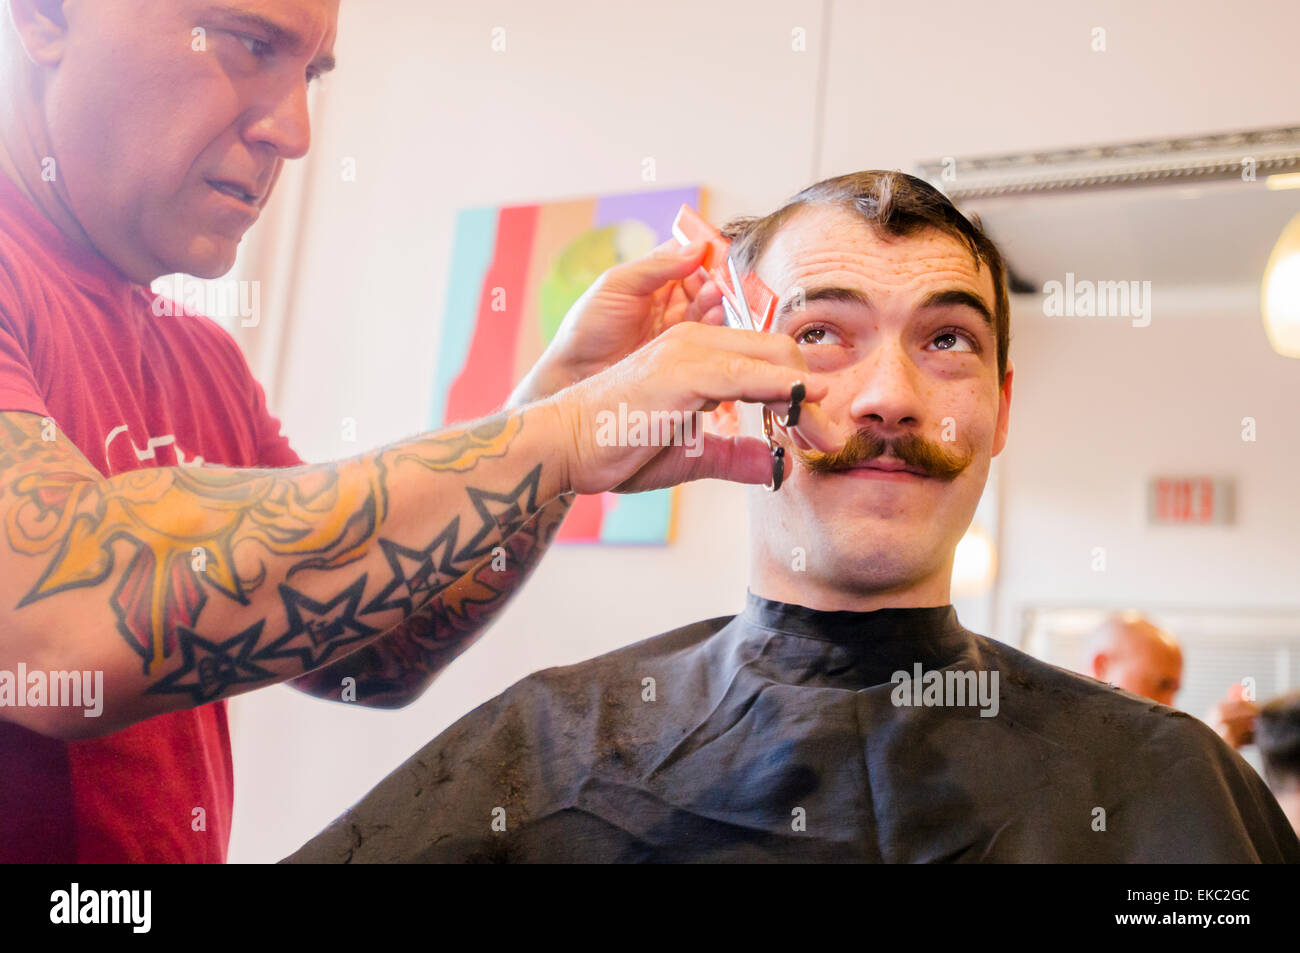 Young man with handlebar moustache having his hair cut - Stock Image